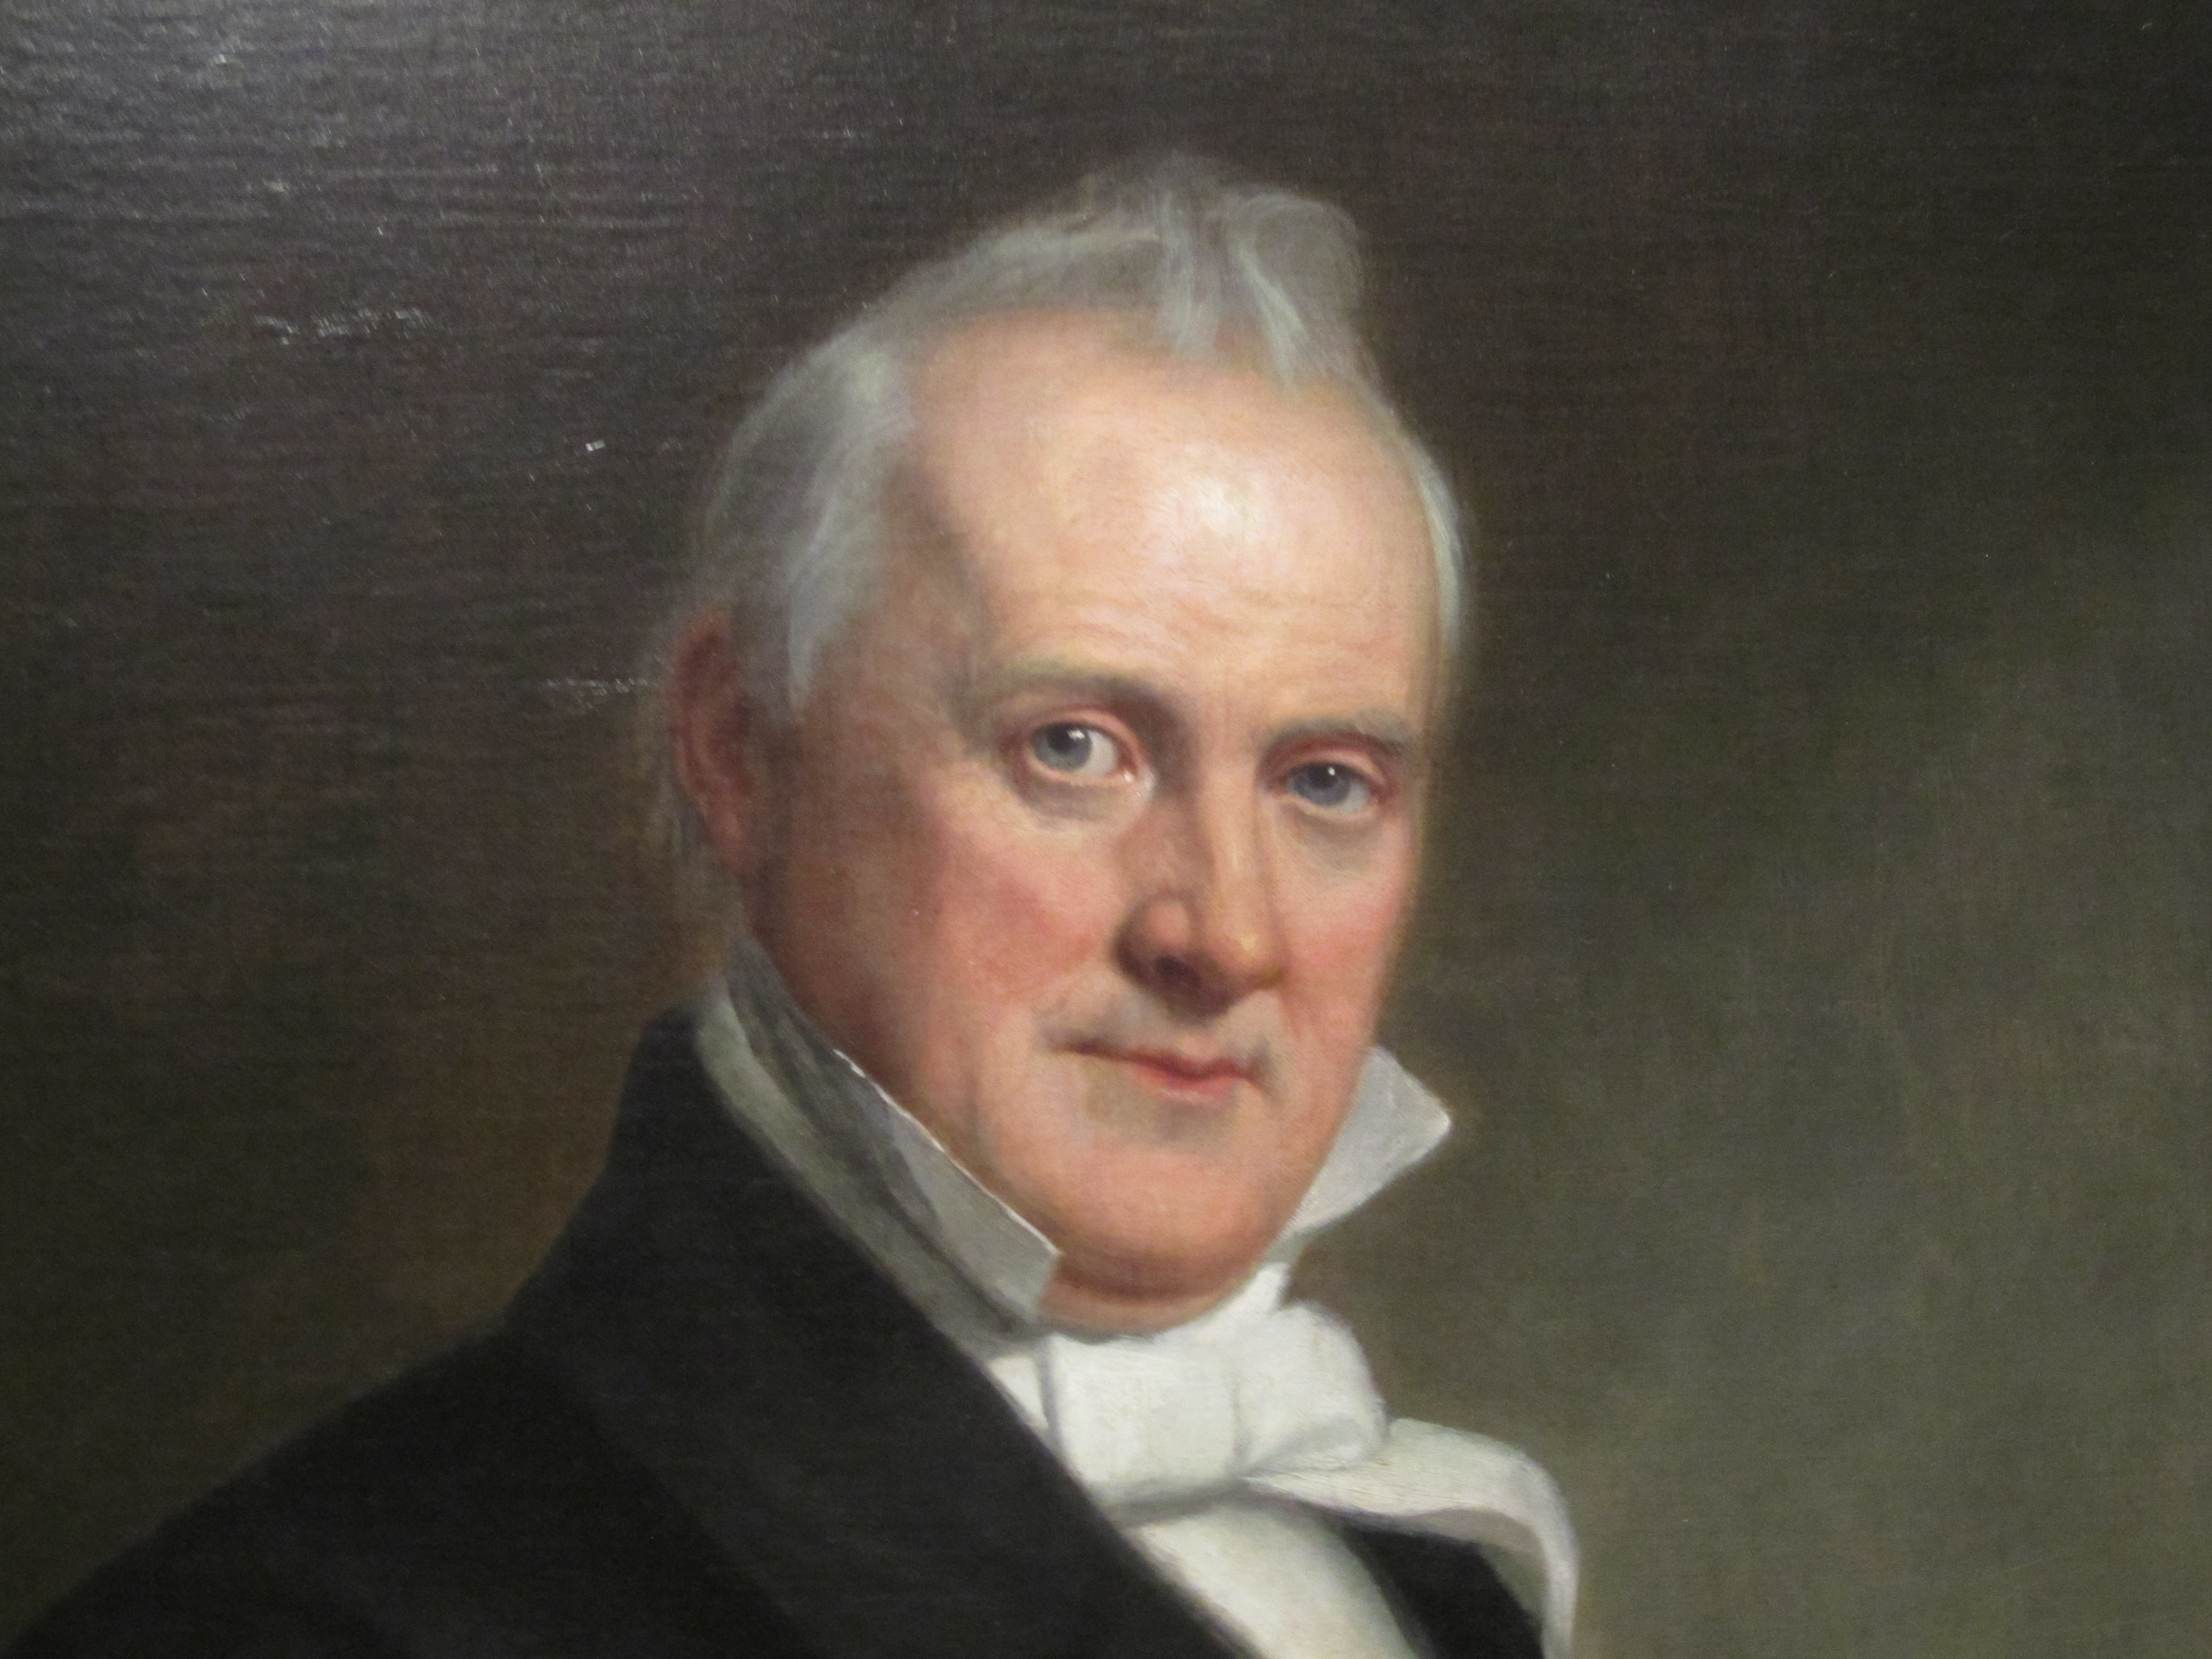 james buchanan James buchanan (april 23, 1791 – june 1, 1868) was the 15th president of the united states (1857– 1861) he was the only bachelor president and the only resident of pennsylvania to hold the office of president he has been criticized for failing to prevent the country from sliding into the american civil waron buchanan's final day as president, he remarked to the incoming abraham lincoln.